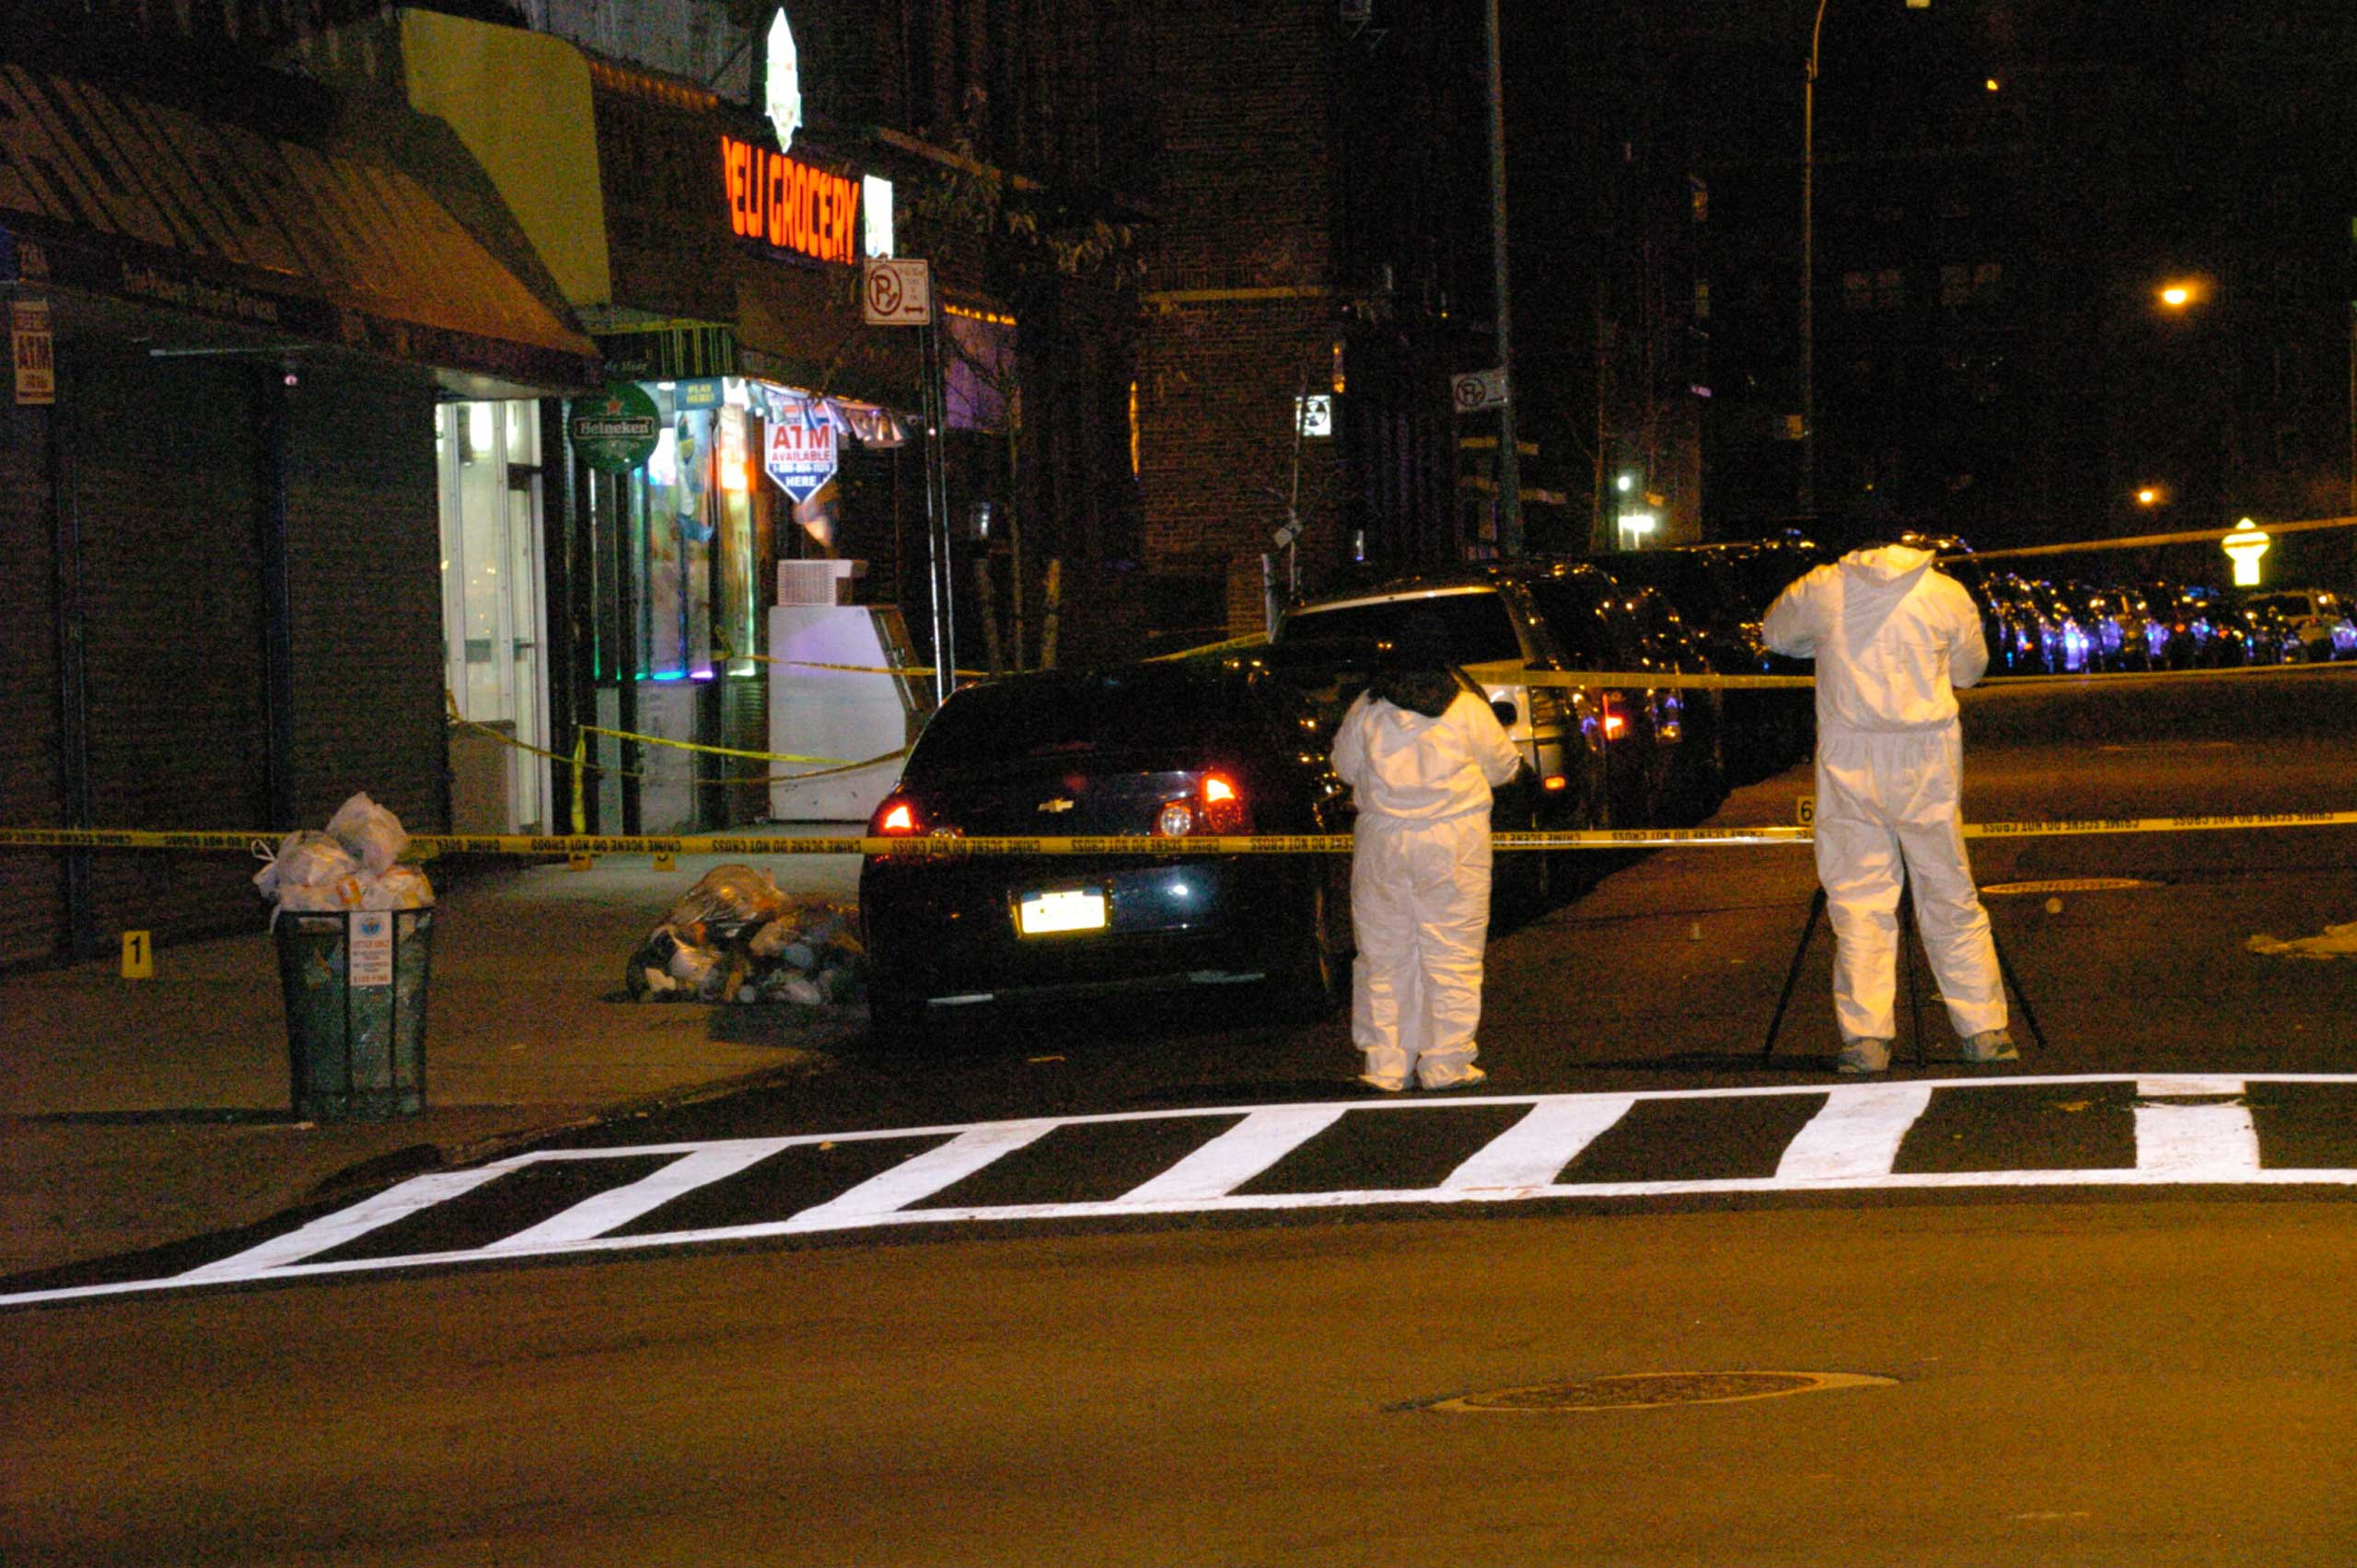 Investigators examine the crime scene where two NYPD officers were shot in the Bronx borough of New York City, early on Jan. 6, 2014.